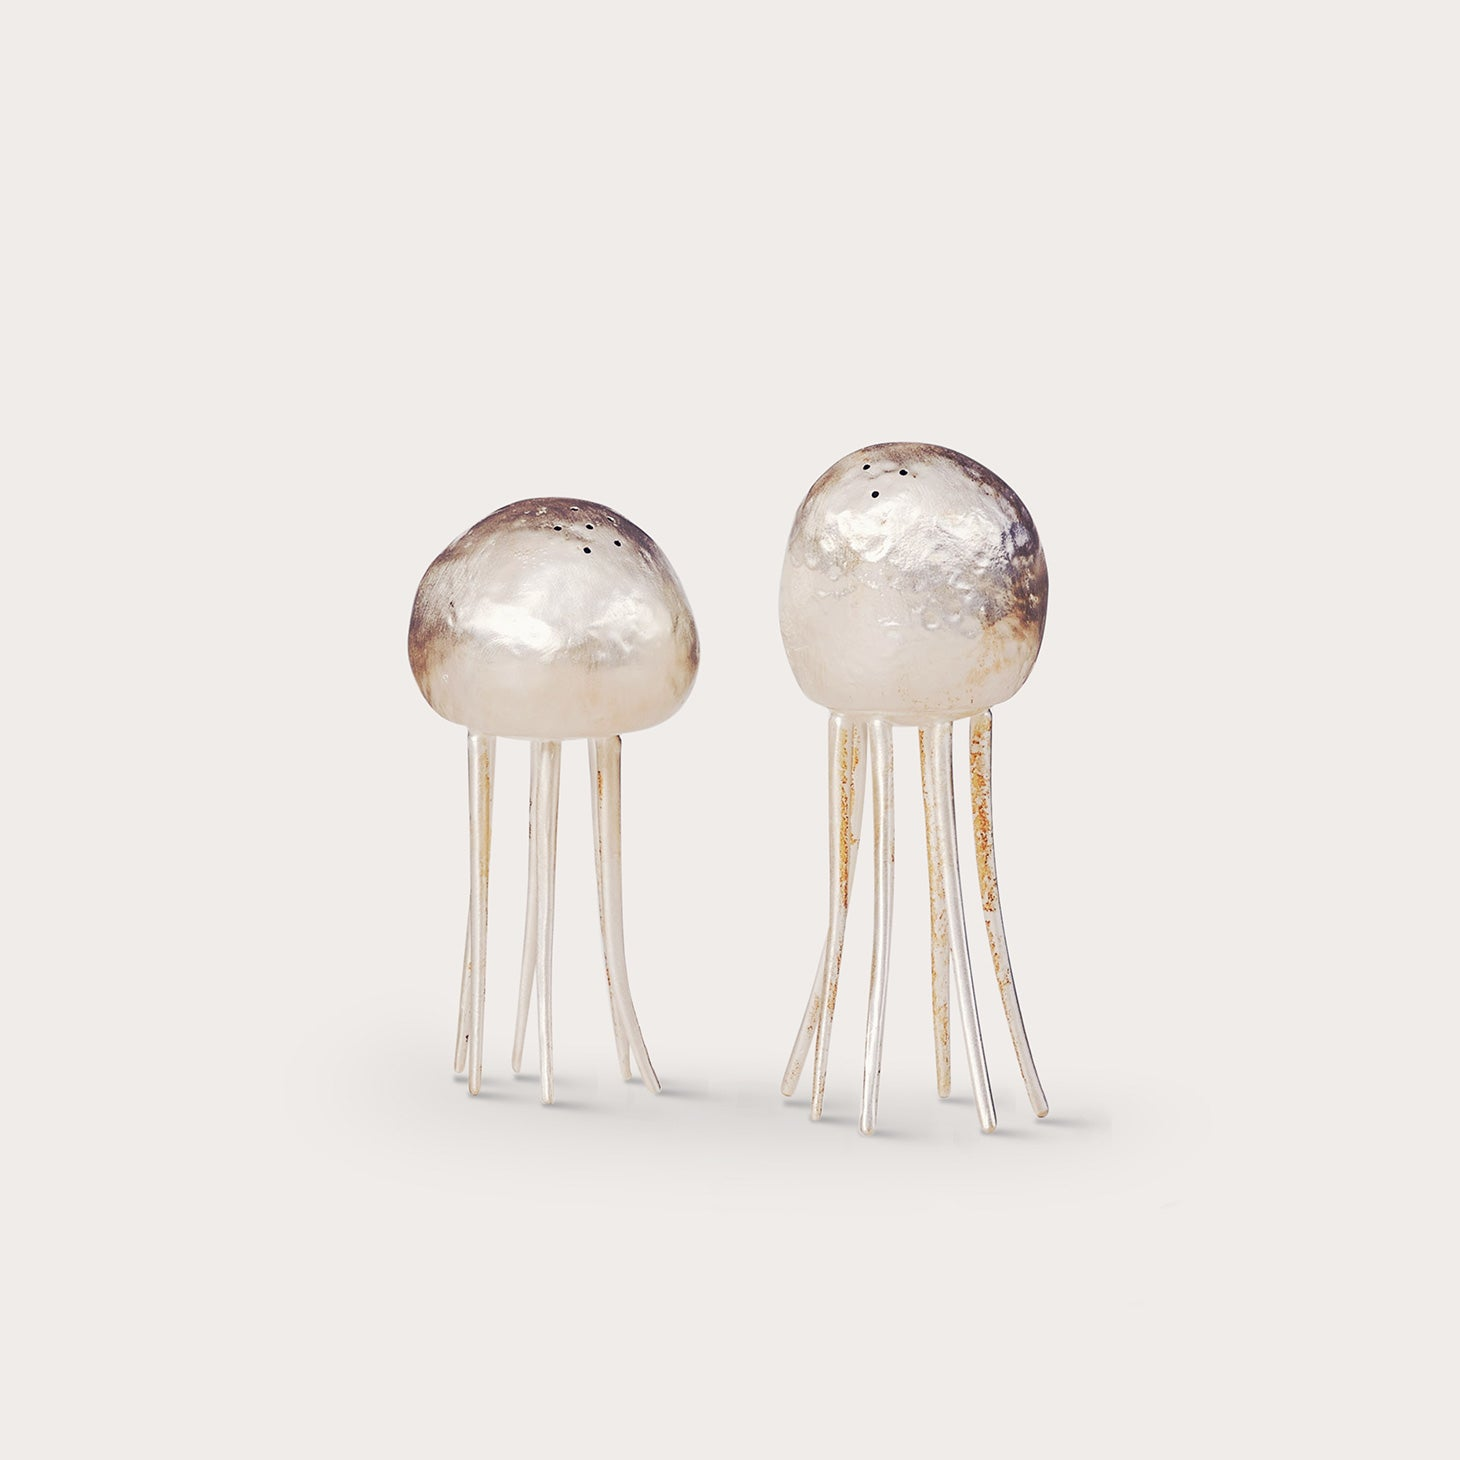 Salt & Pepper - Jellyfish Accessories Yabu Pushelberg Designer Furniture Sku: 561-100-10052